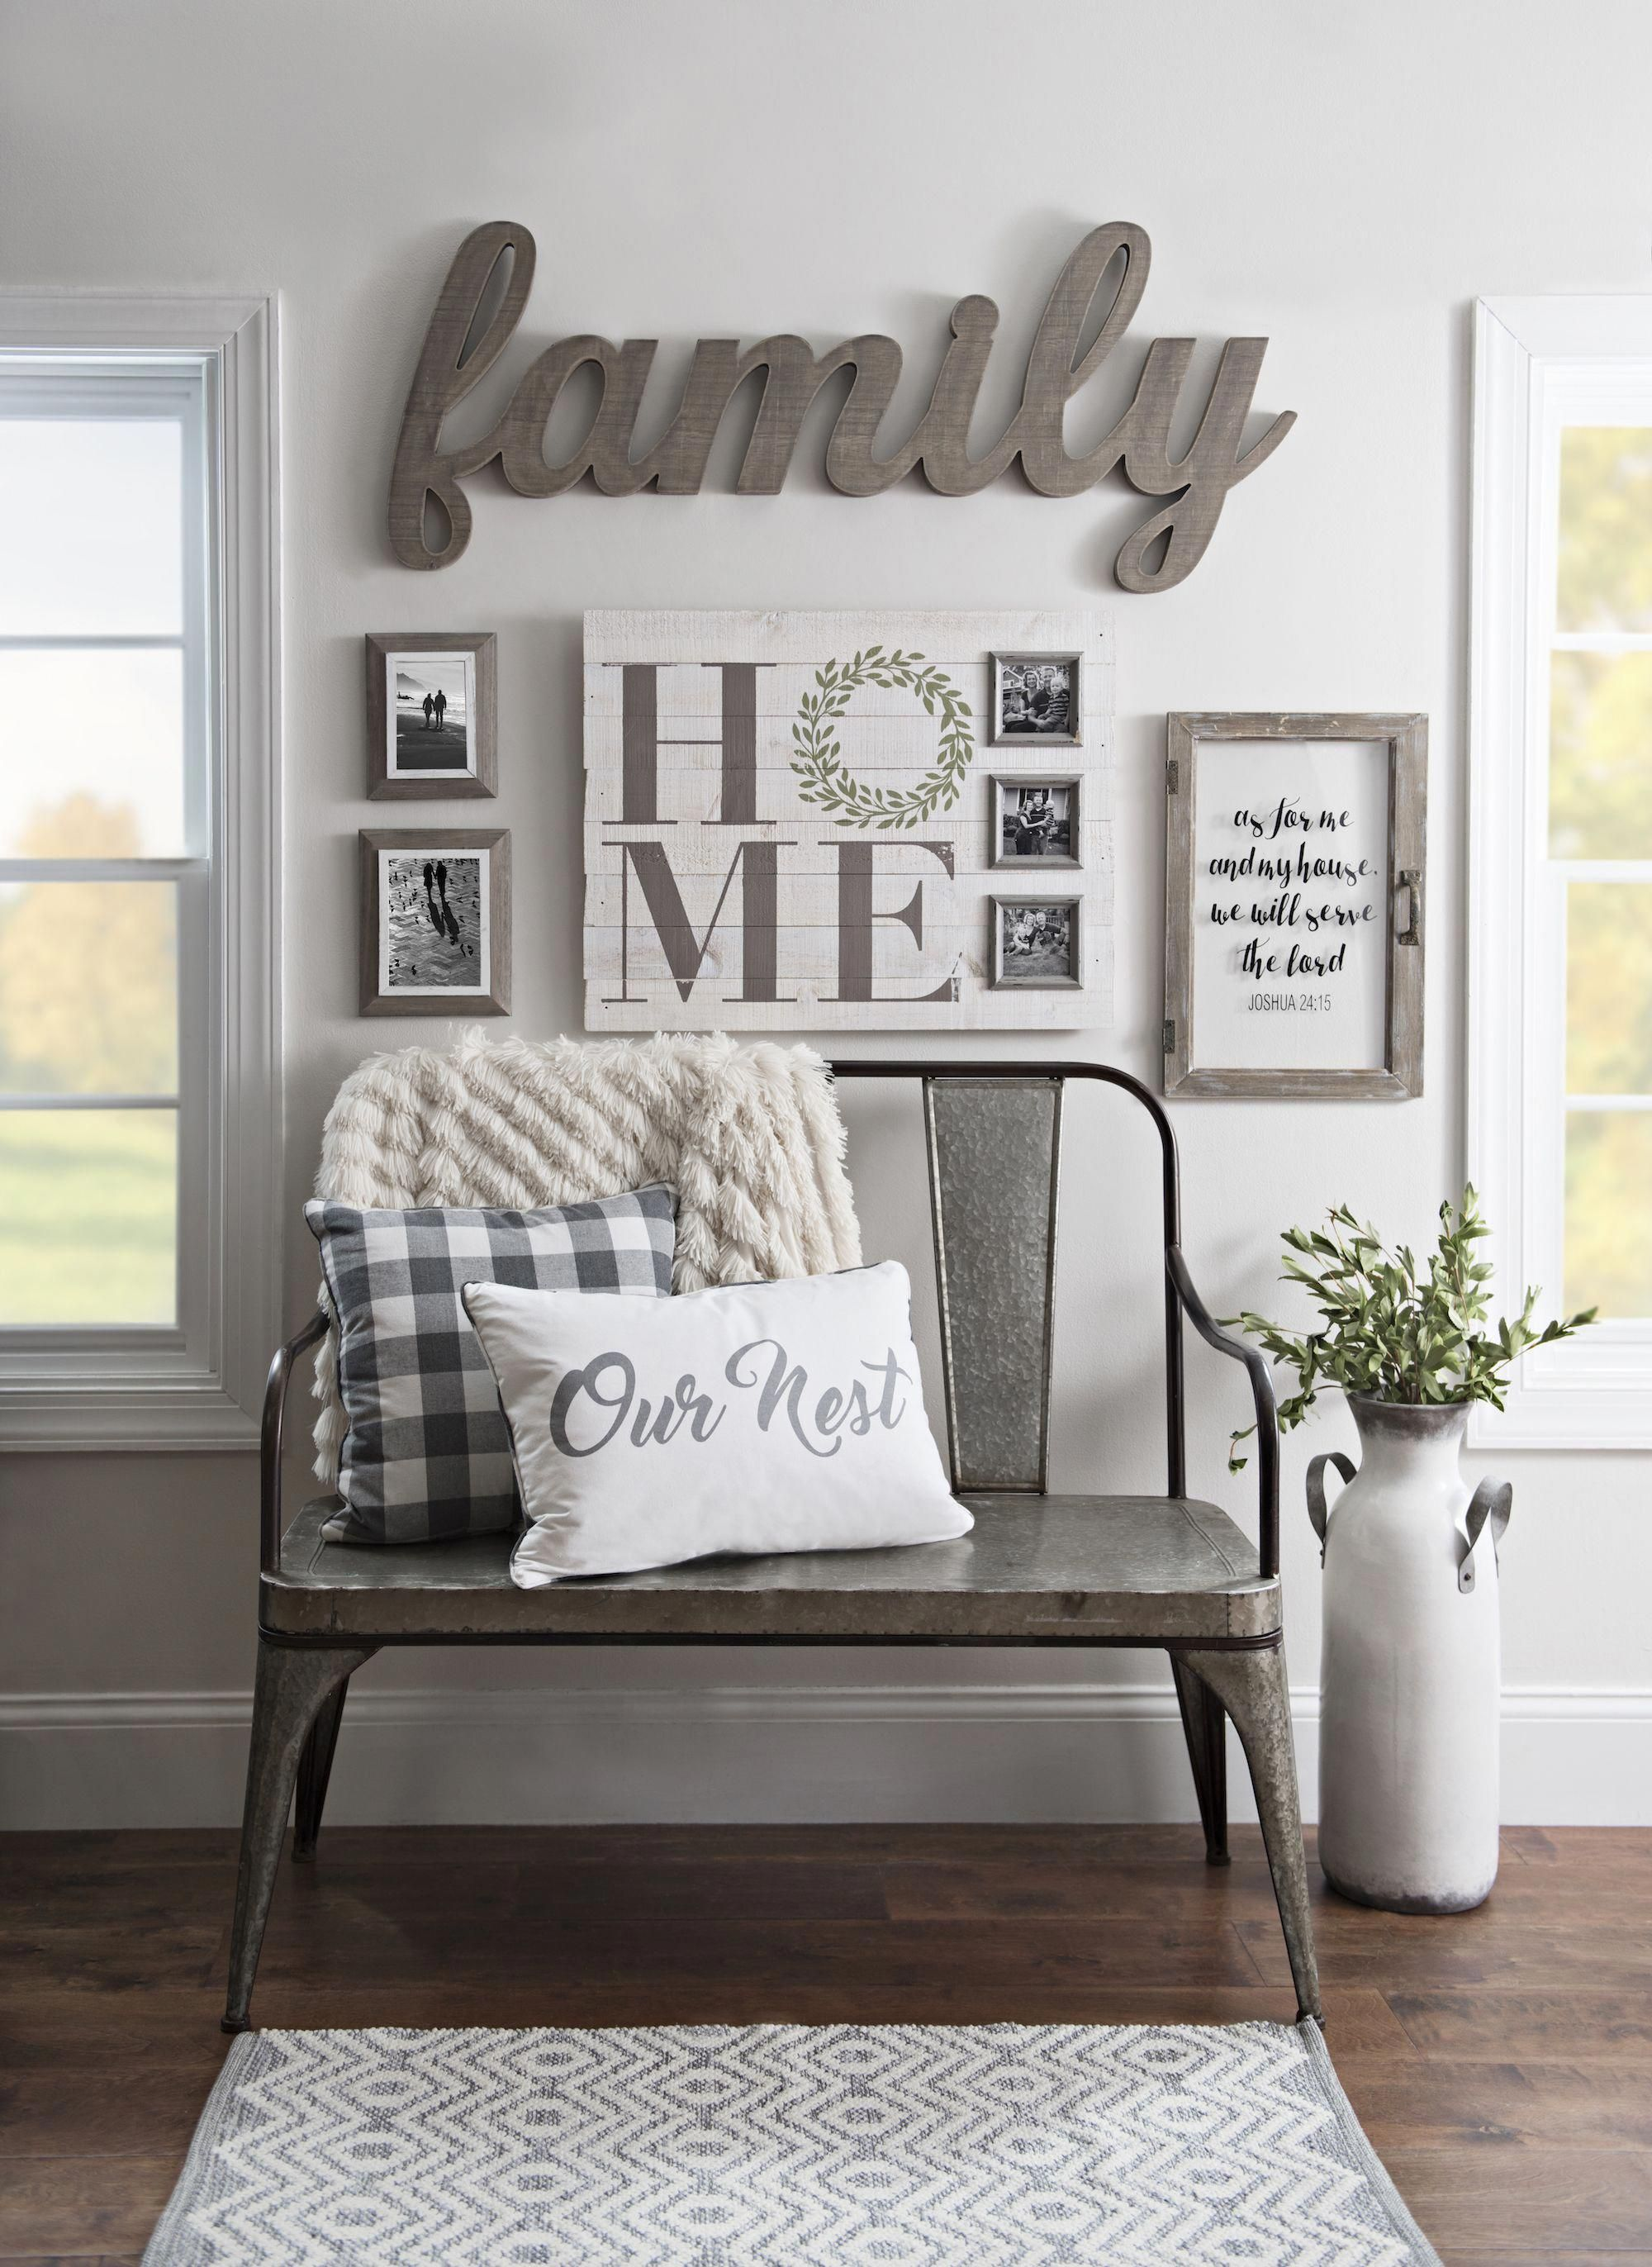 Driftwood Family Word Plaque In 2020 Cheap Home Decor Diy Home